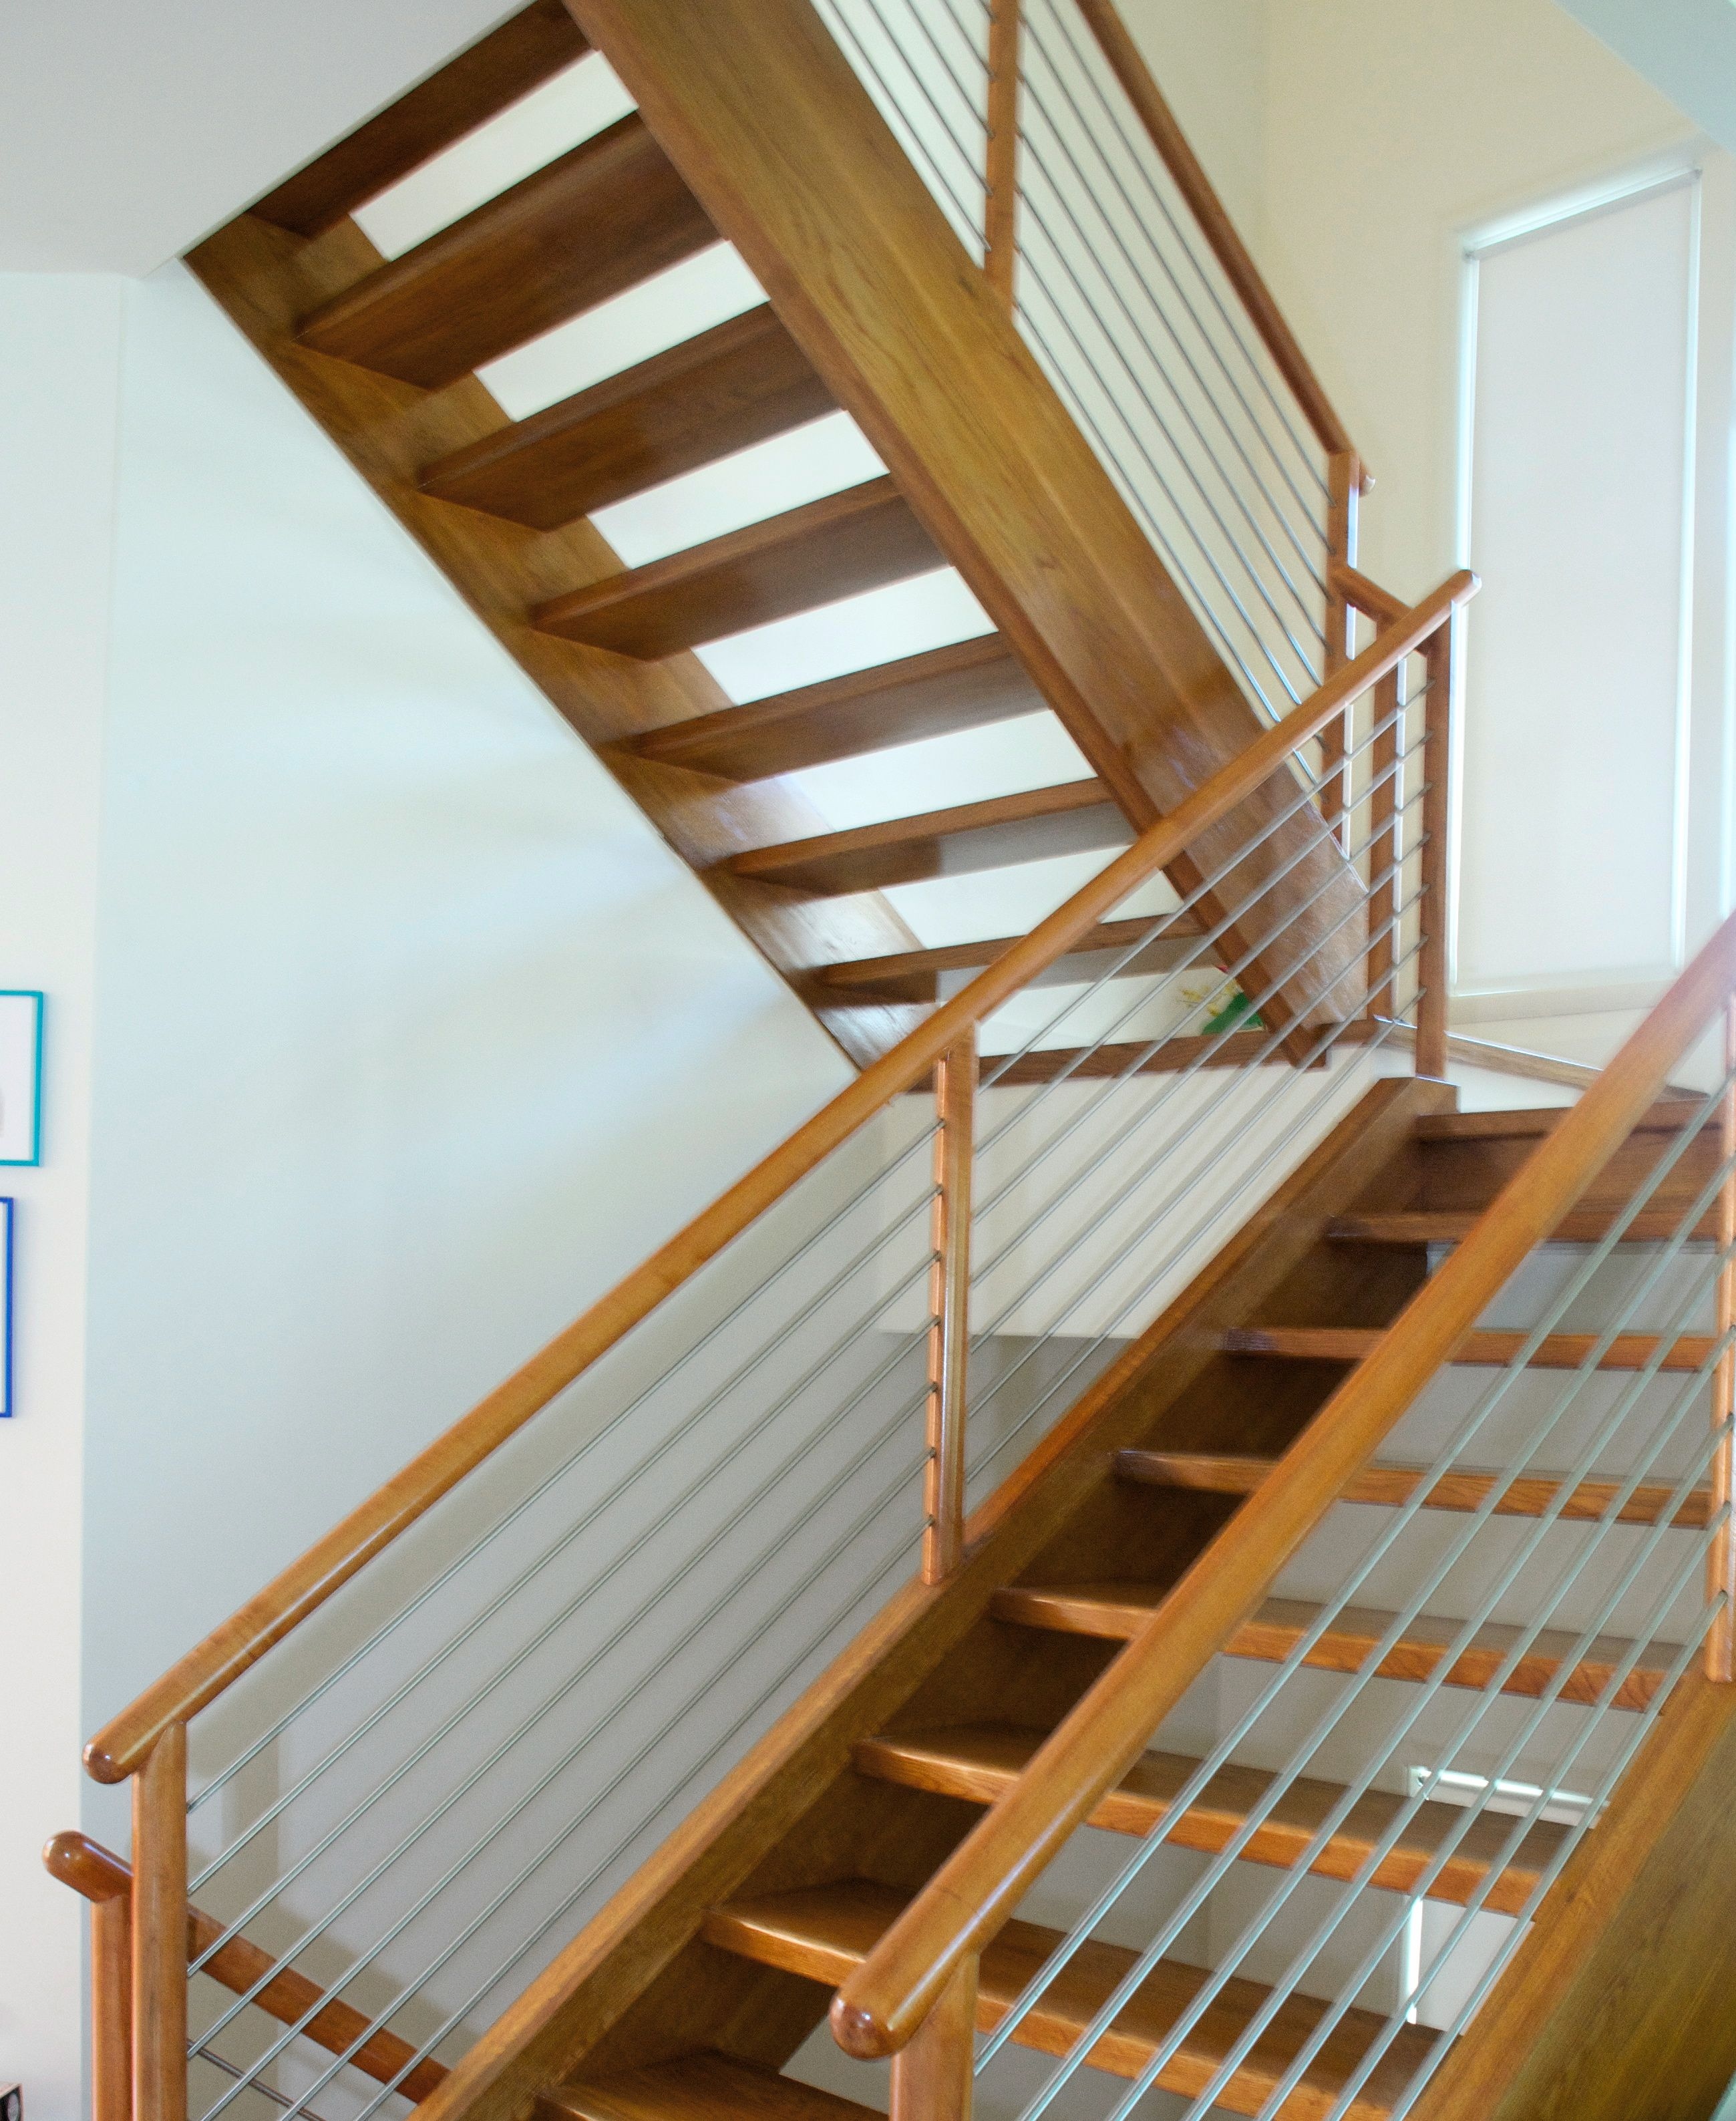 Stair Parts For Stair Projects | For Atlanta Contractors, Construction  Companies U0026 Home Owners